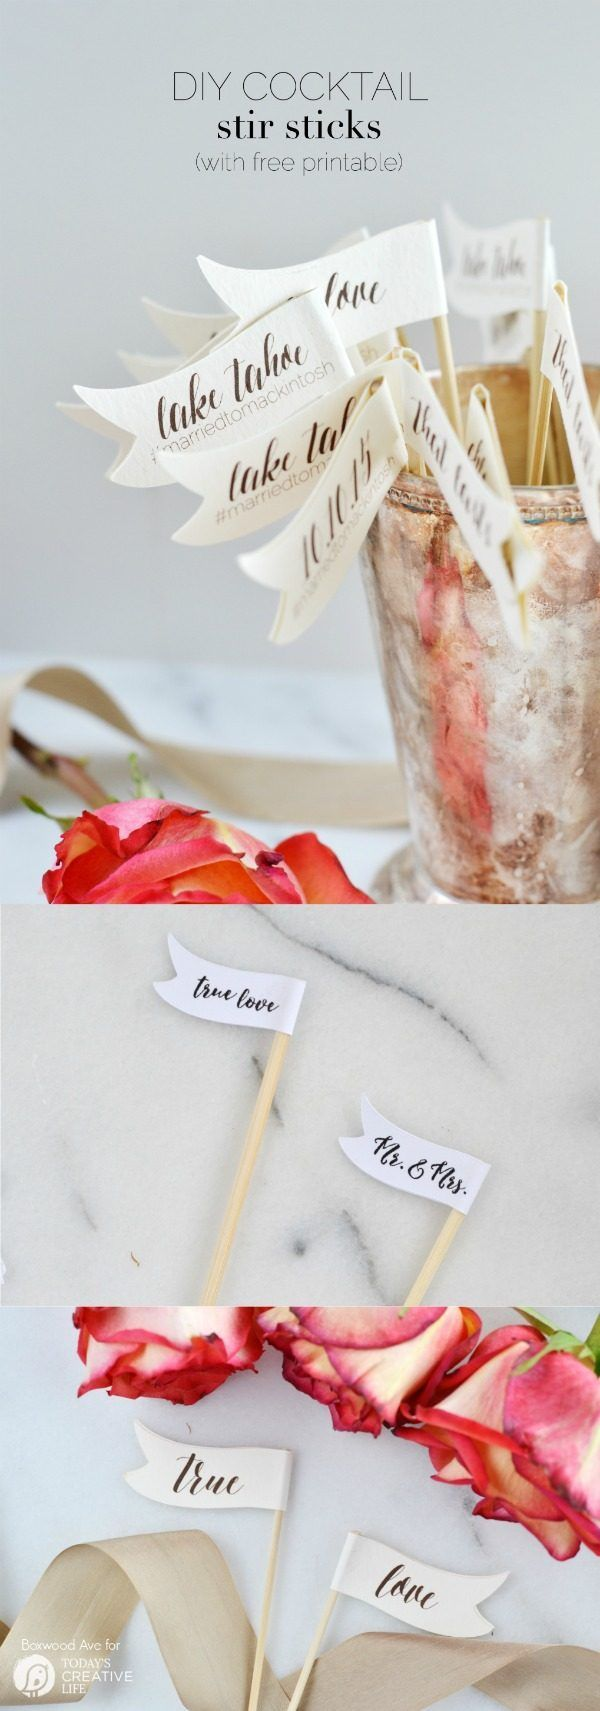 354 best Party Inspiration images on Pinterest | Birthdays ...